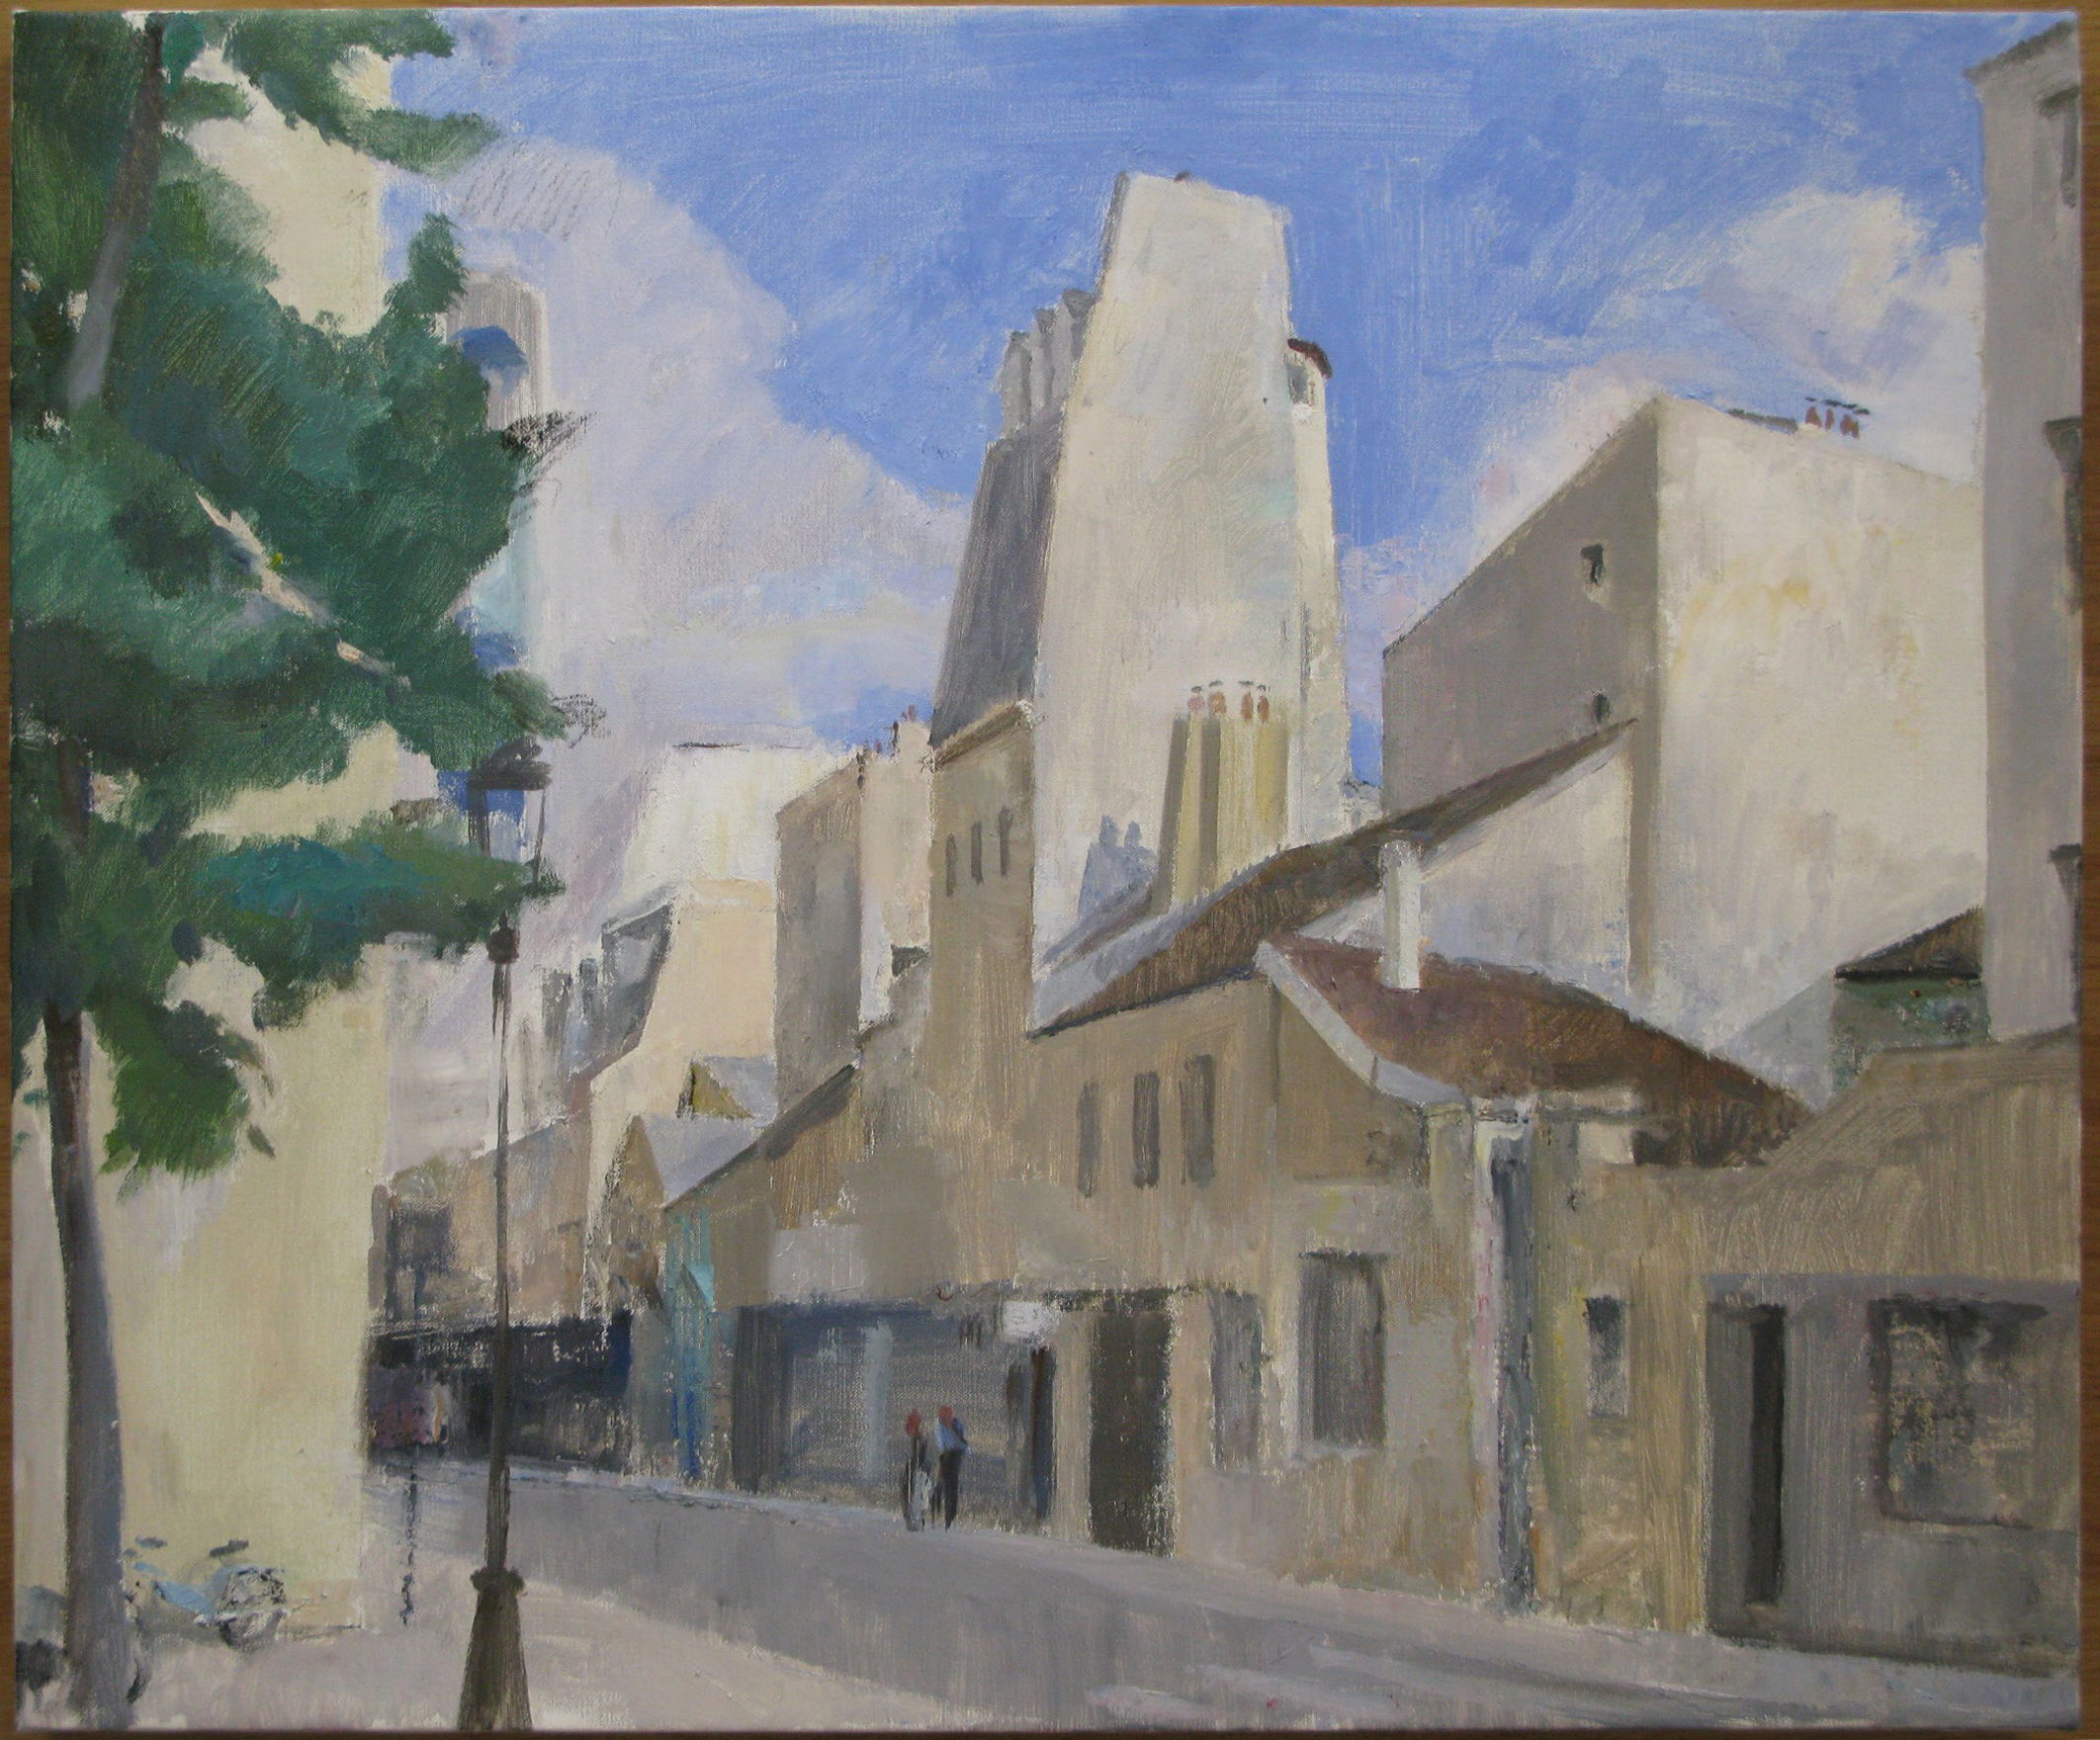 Rue de Charenton, 23 x 28 inches, oil on linen